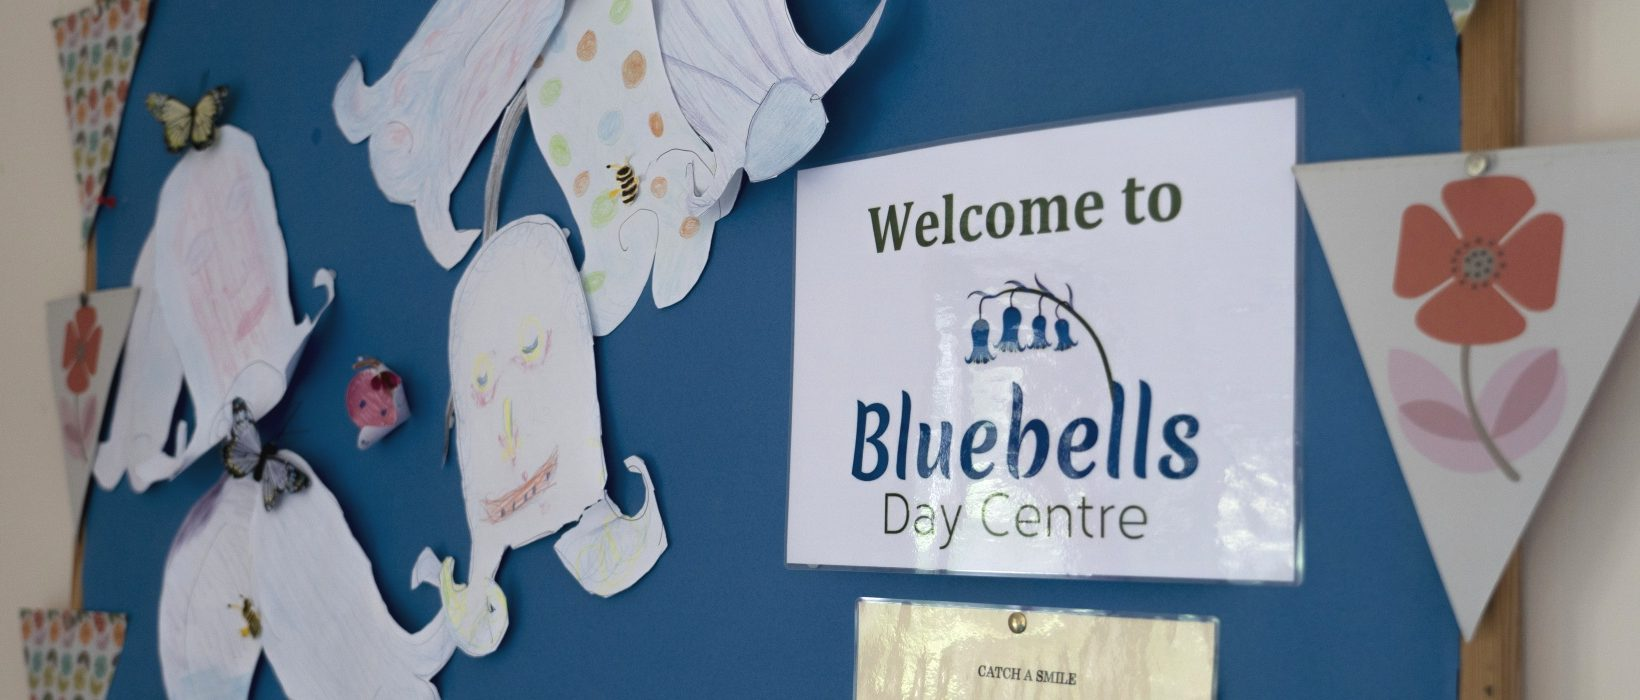 Bluebells Day Centre